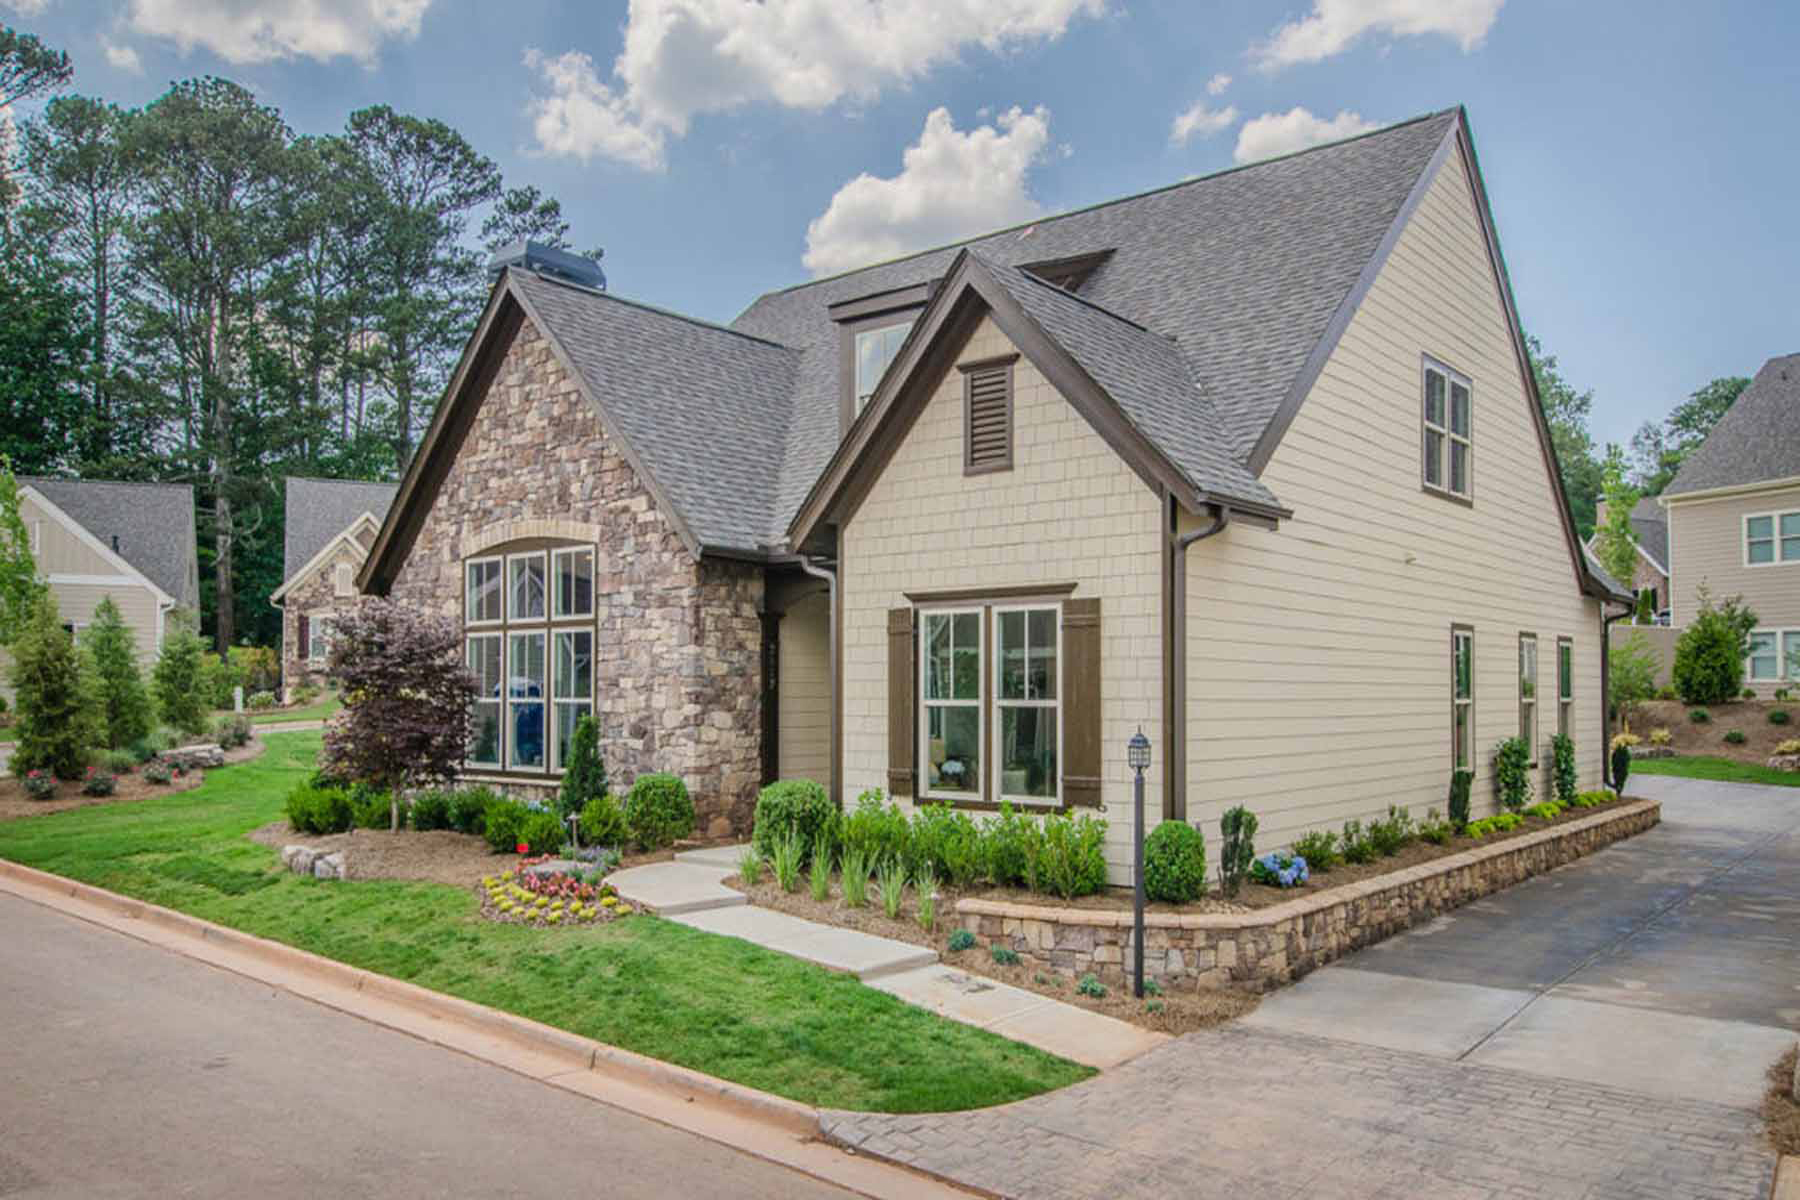 Single Family Homes for Sale at Luxury Active Adult Living 201 Foxtail Road Woodstock, Georgia 30188 United States